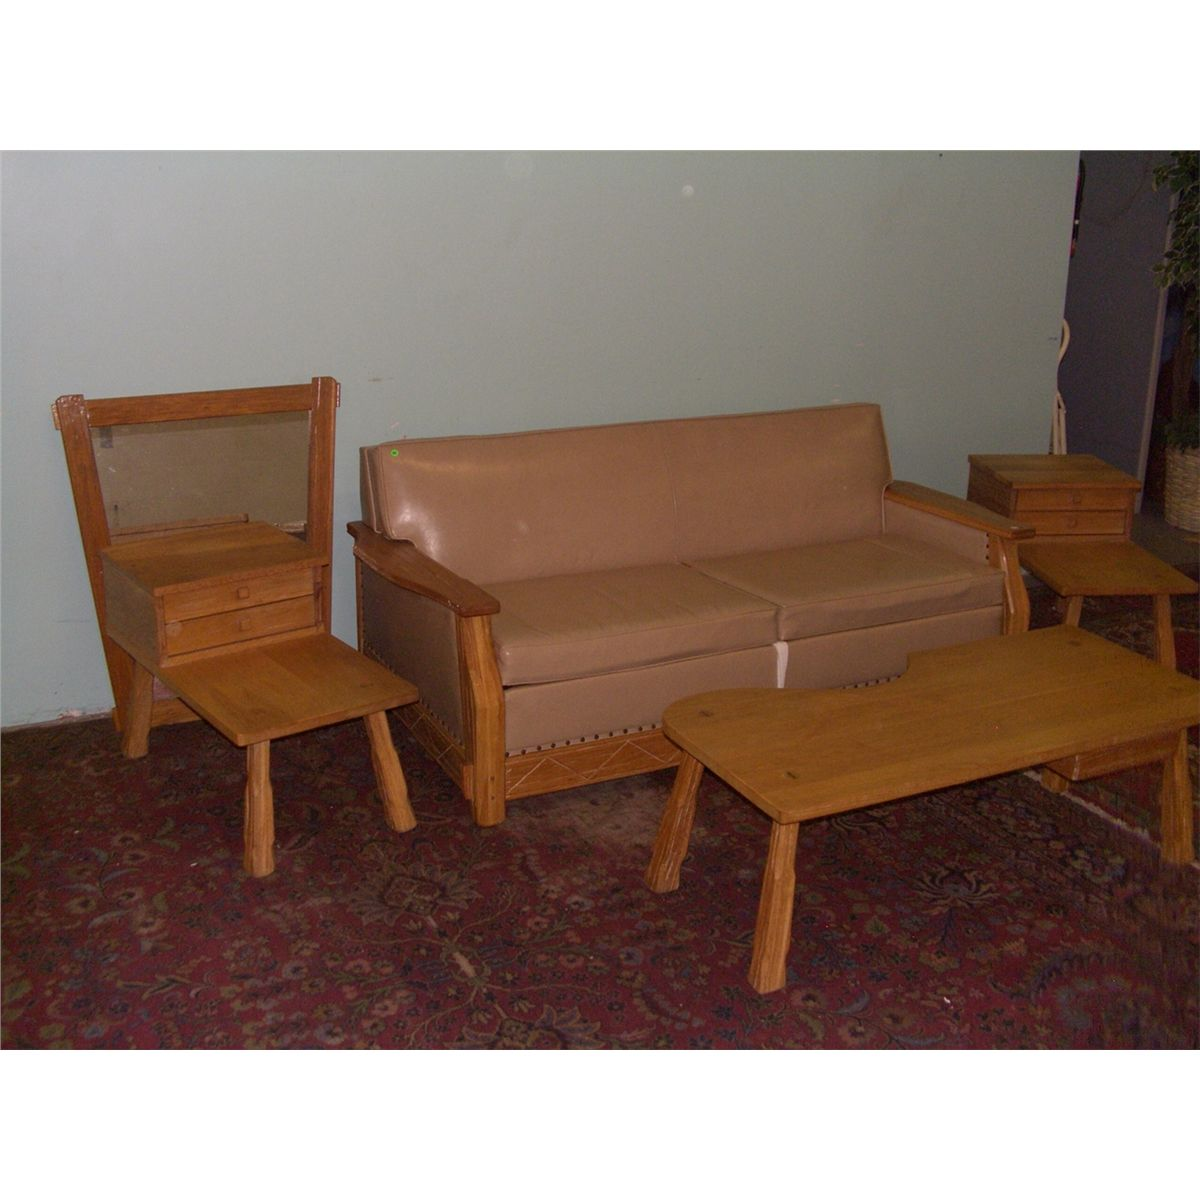 5 Piece Ranch Oak Vintage Living Room Set By A. Brandt Co, Sofa. Coffee And  2 End Tables Mirror SSR